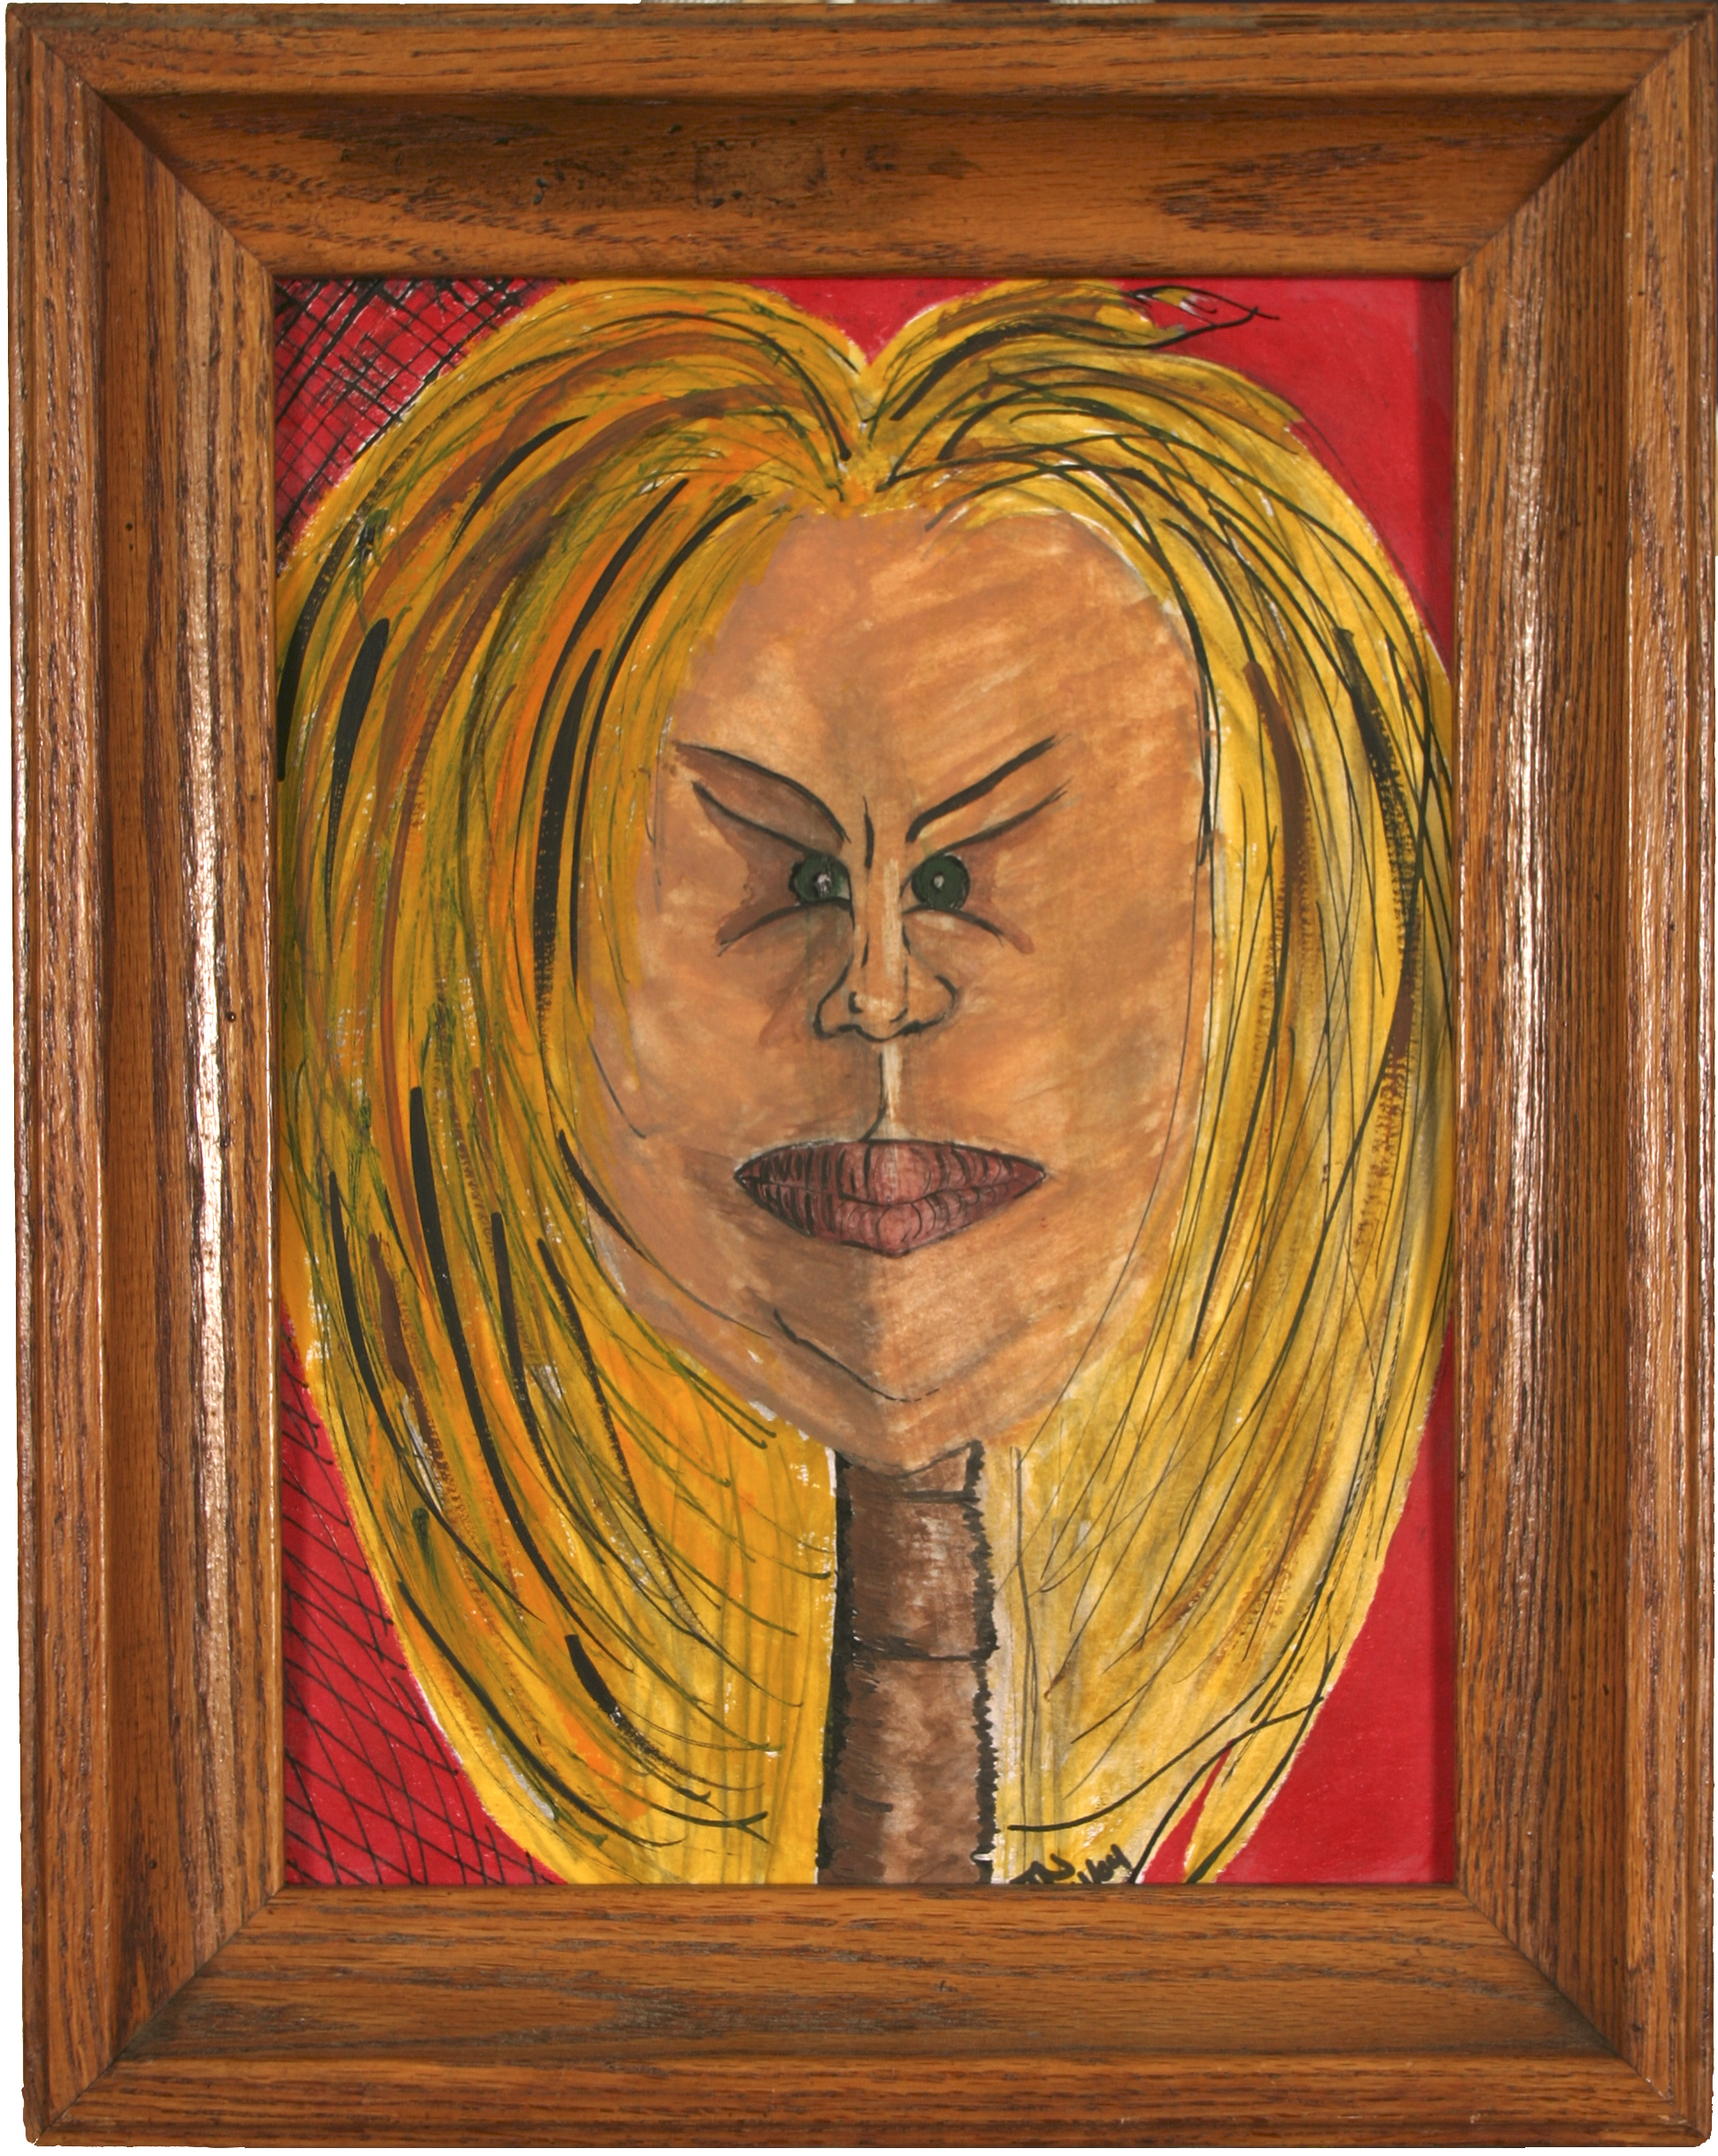 Hollywood Lips c/o The Museum of Bad Art